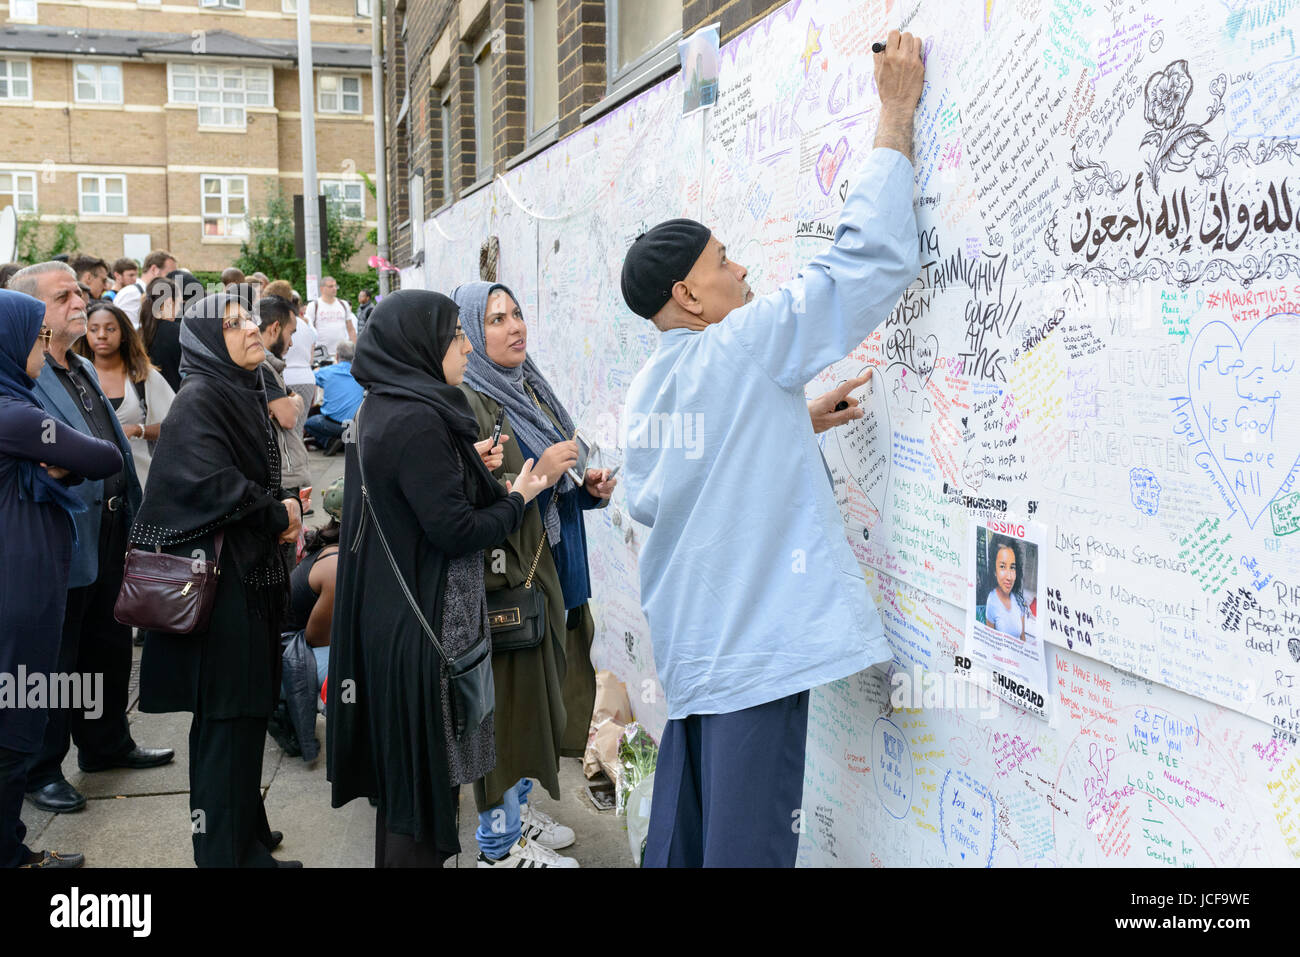 London, UK. 15th June, 2017. A man writes a message of condolence to the victims of the Grenfell Tower fire. The Stock Photo